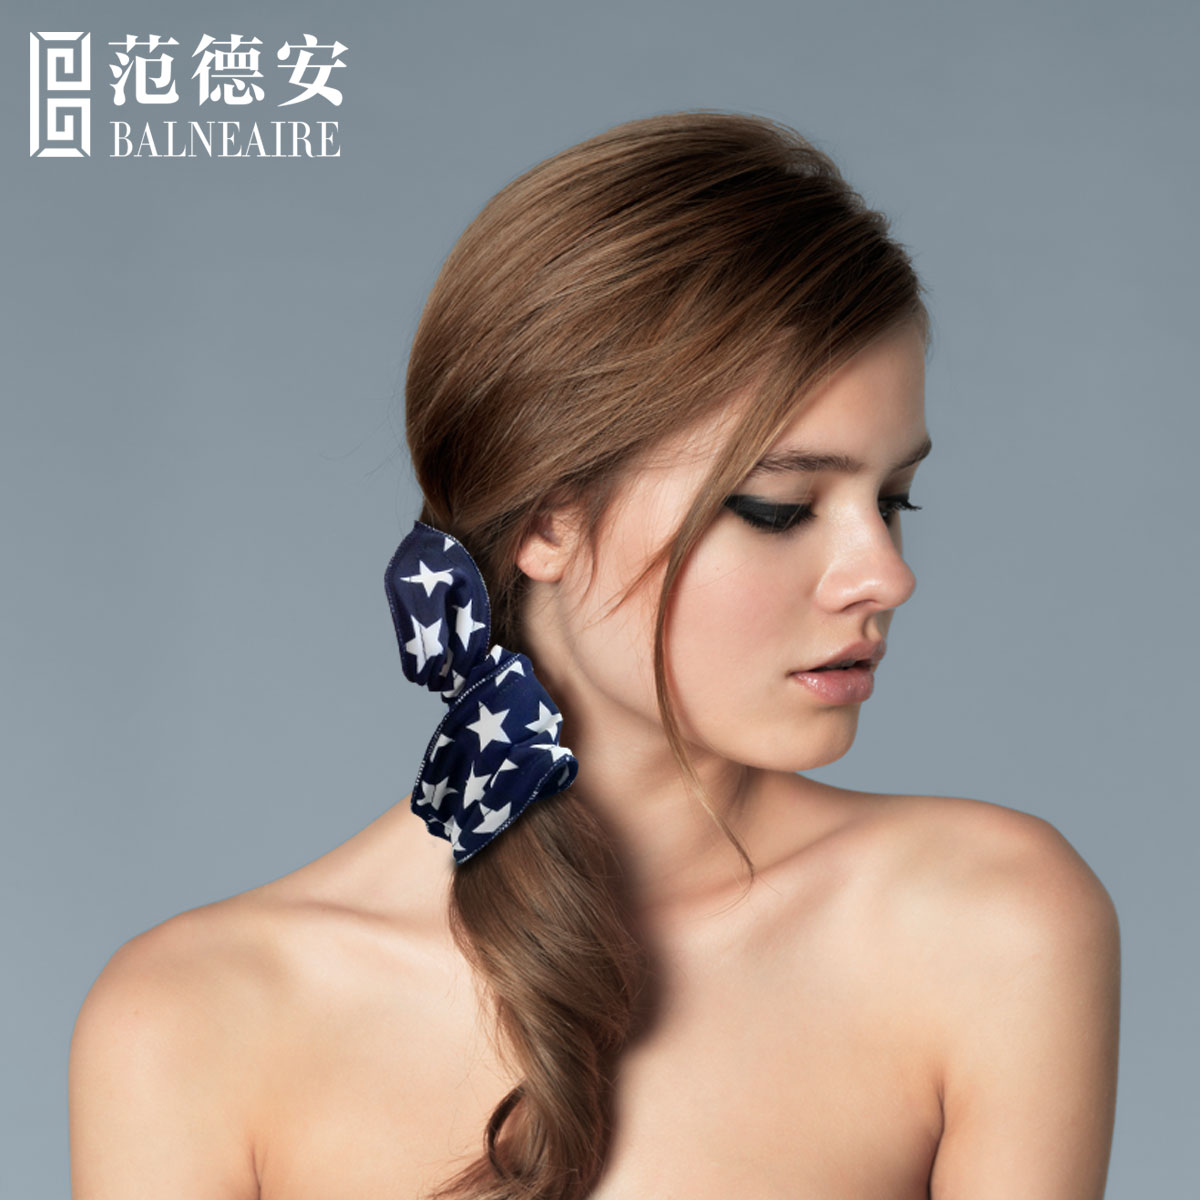 China Beach Wave Hair China Beach Wave Hair Shopping Guide At